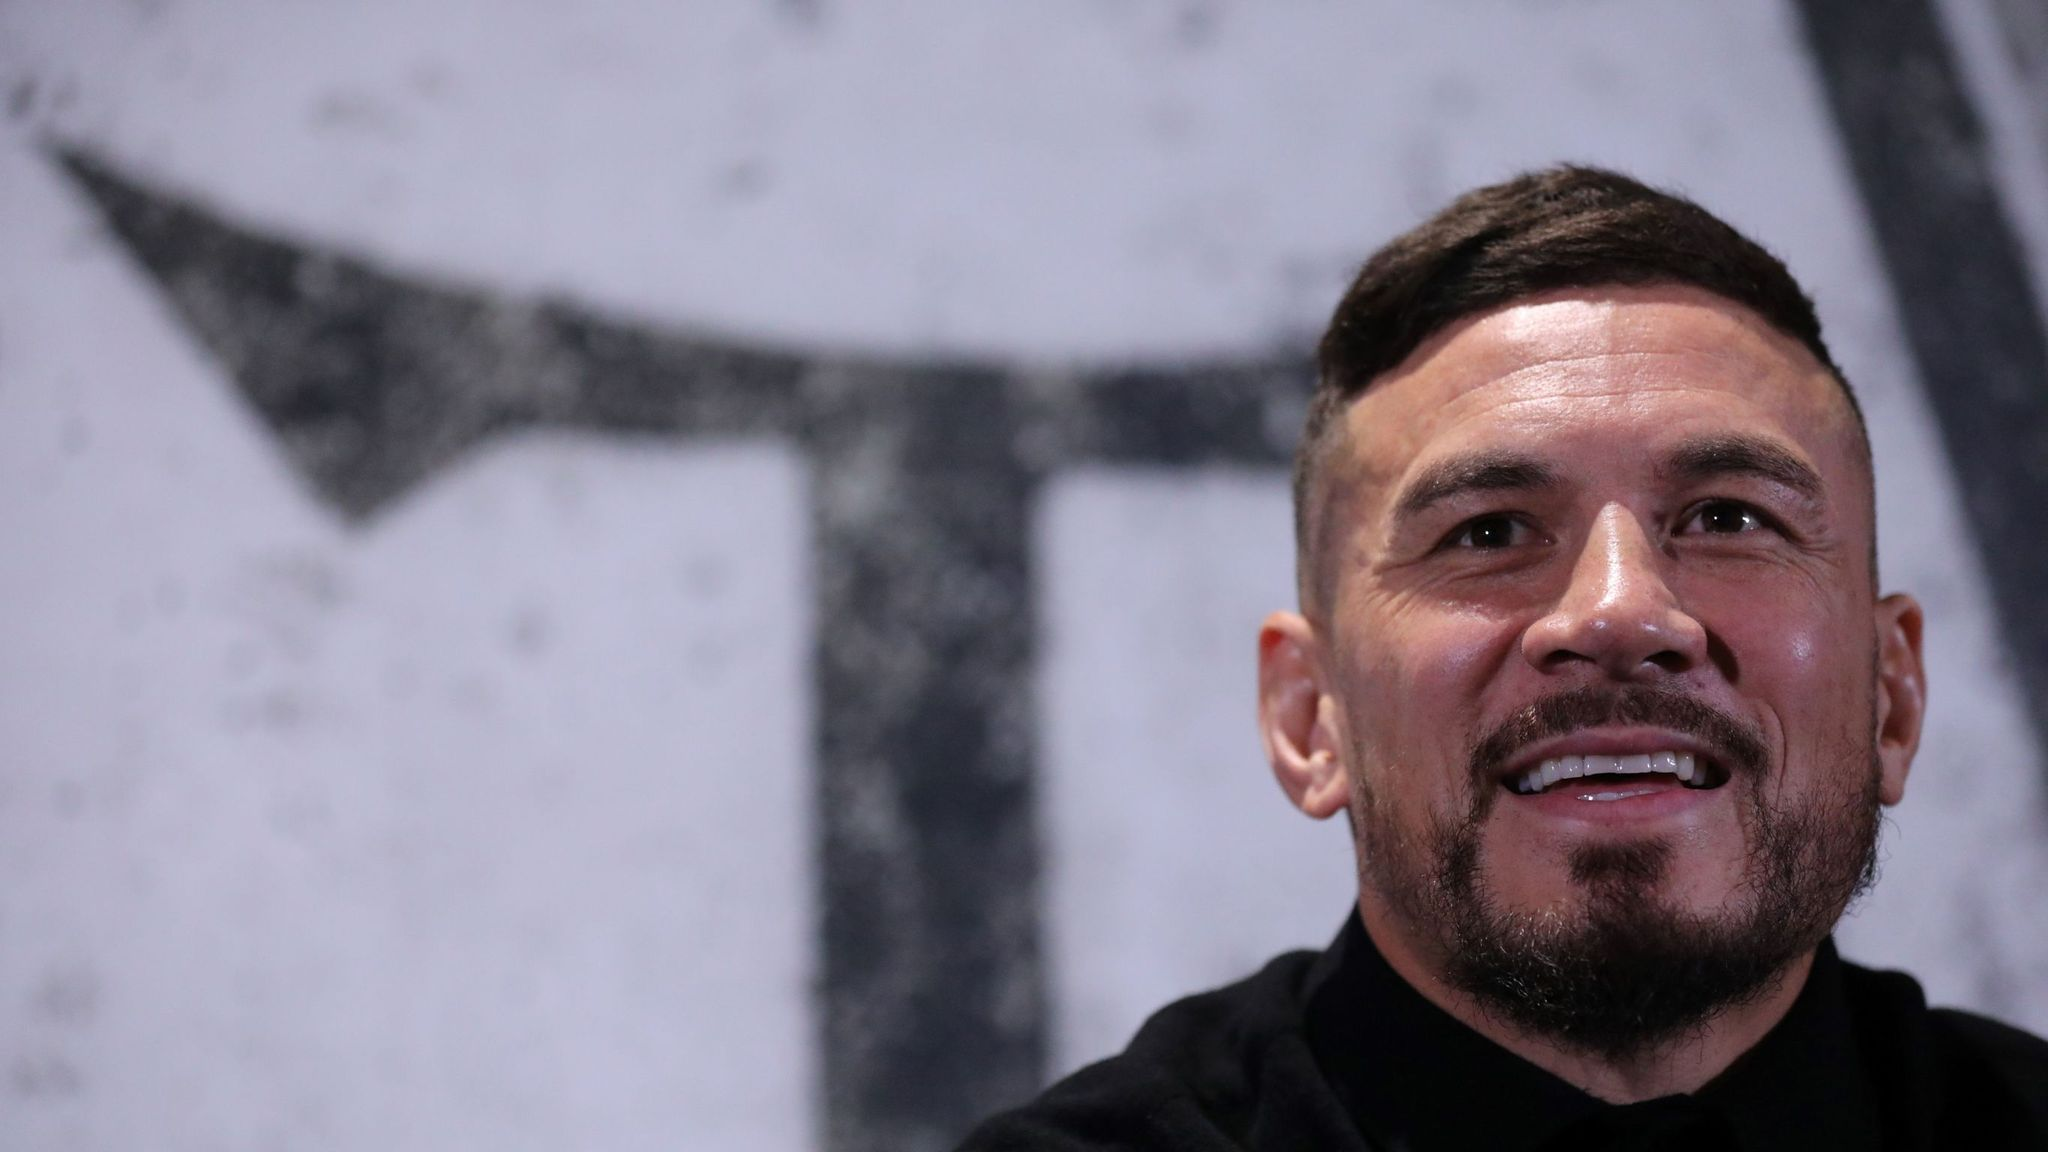 Sonny Bill Williams opens up on his past, embracing Islam and learning from mistakes